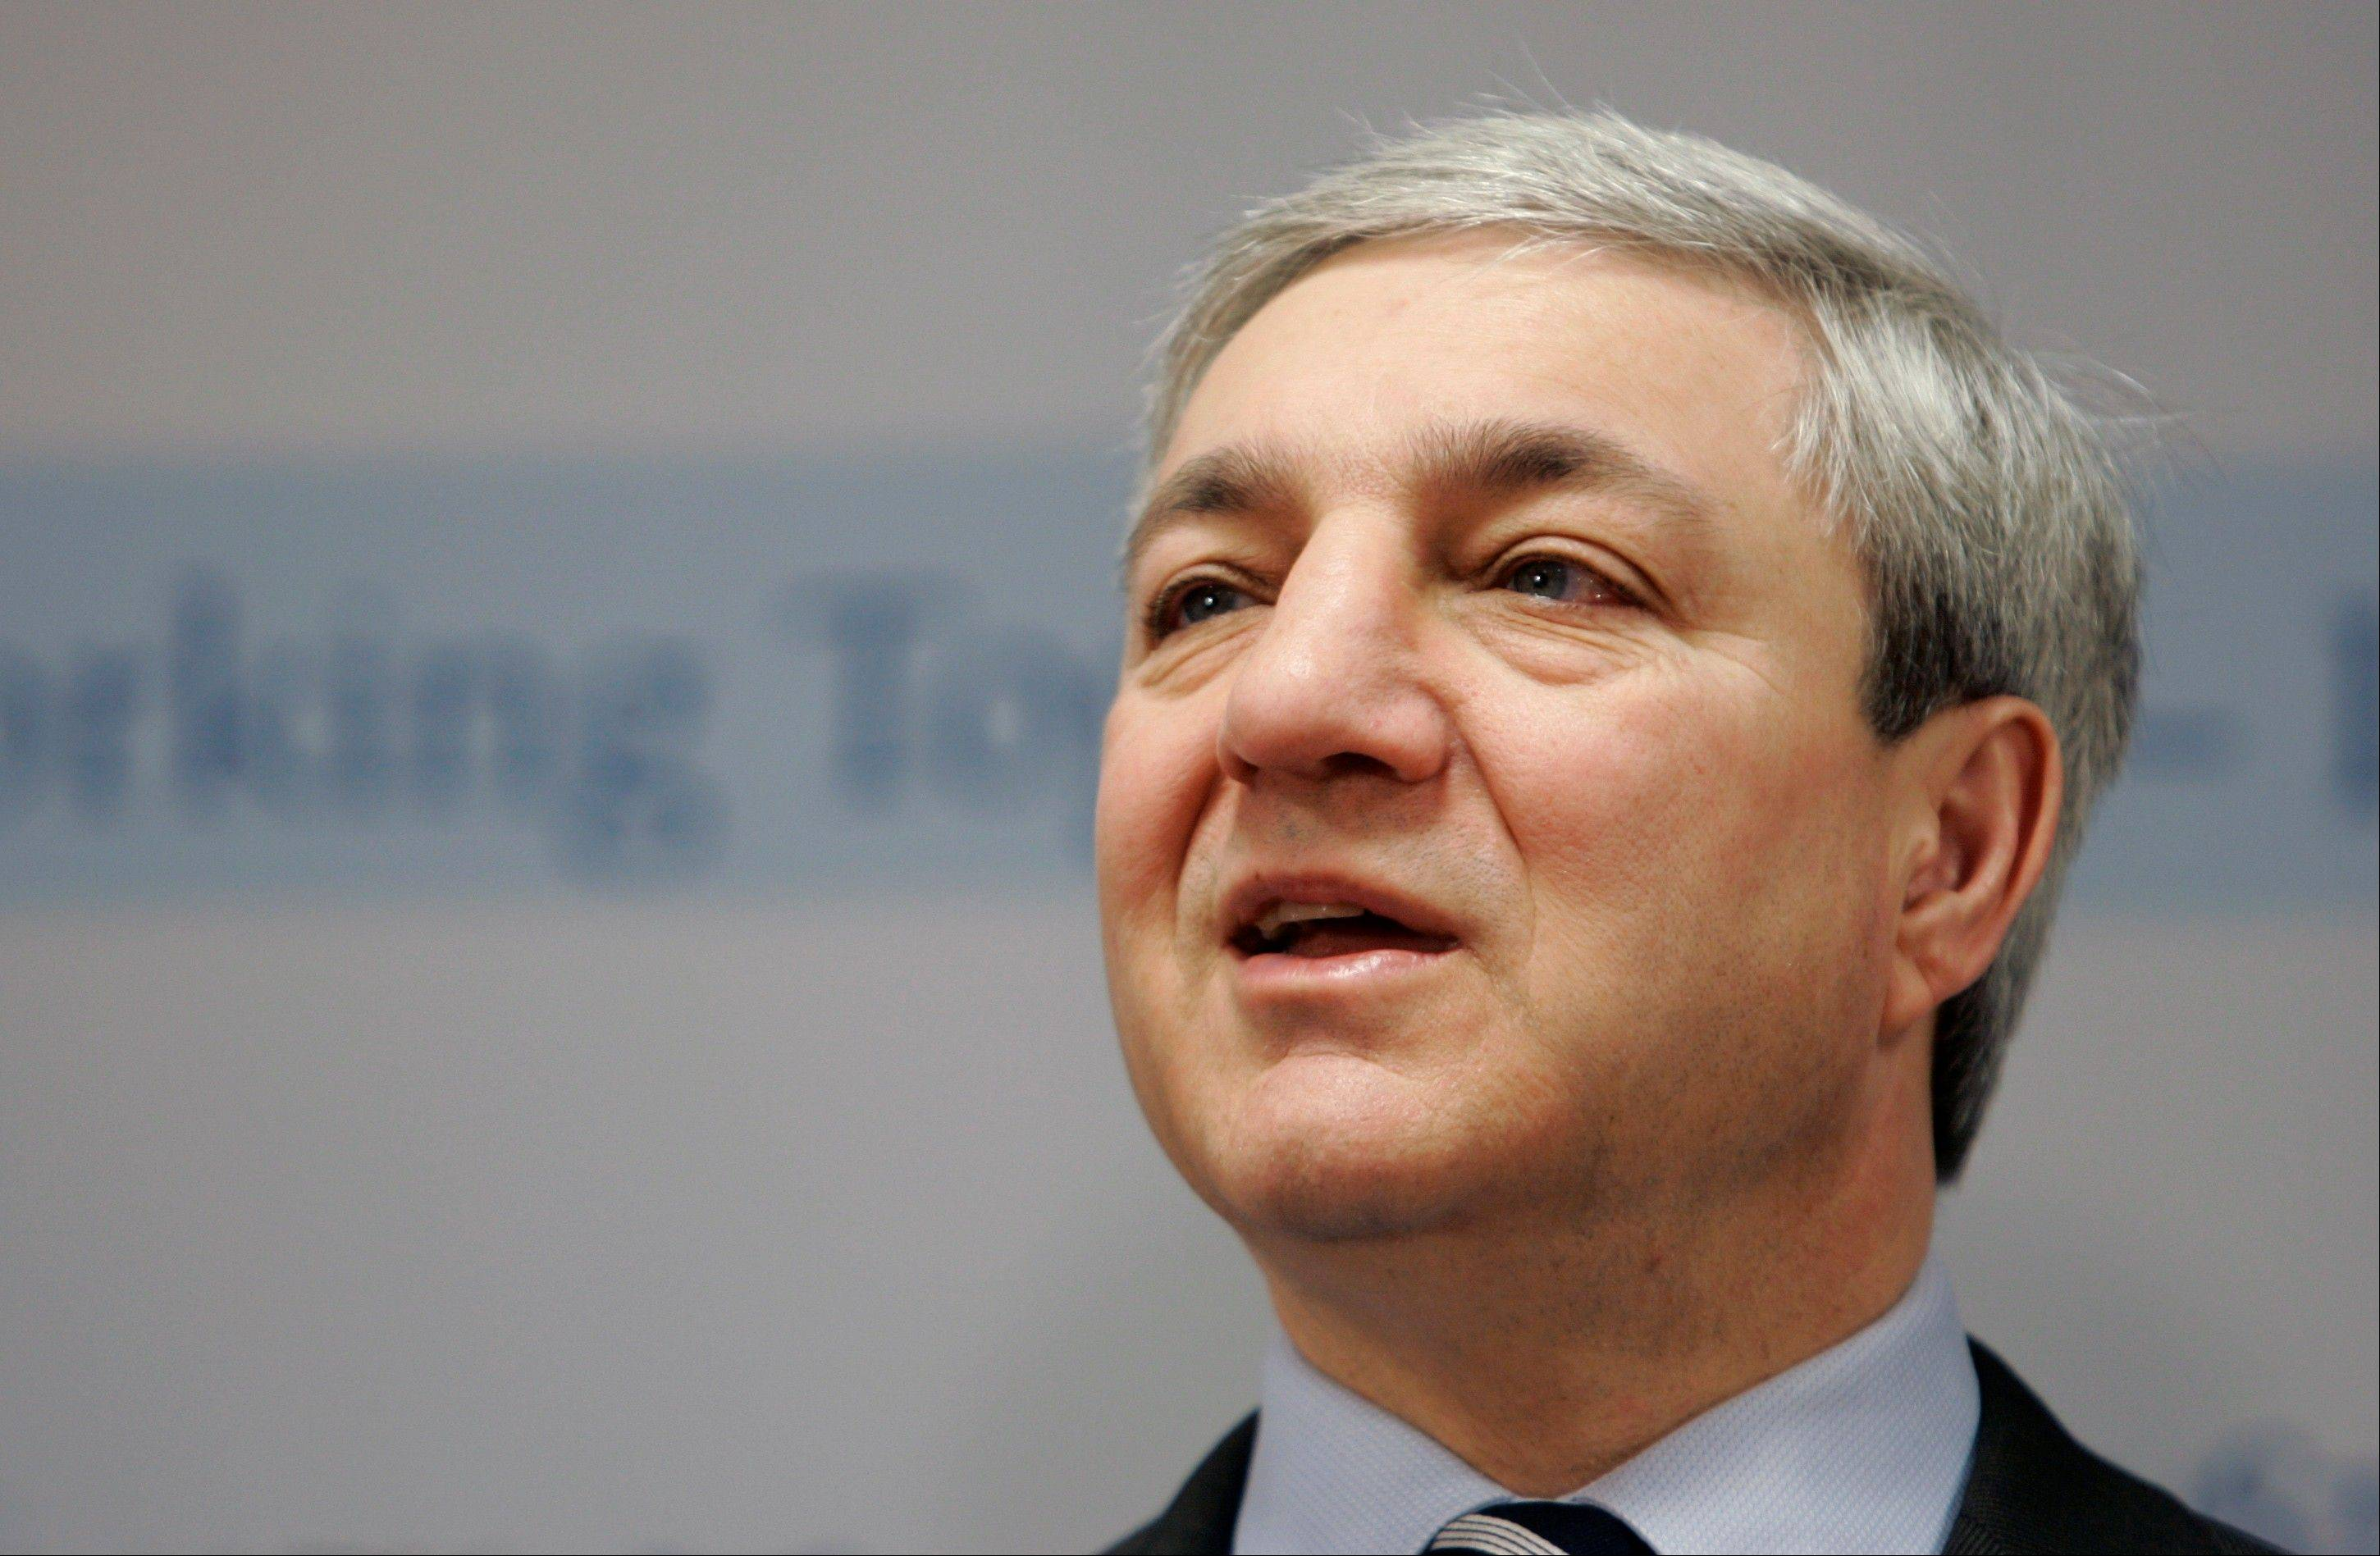 ASSOCIATED PRESSFormer Penn State University President Graham Spanier faces charges that he conspired to conceal child abuse allegations against Jerry Sandusky.